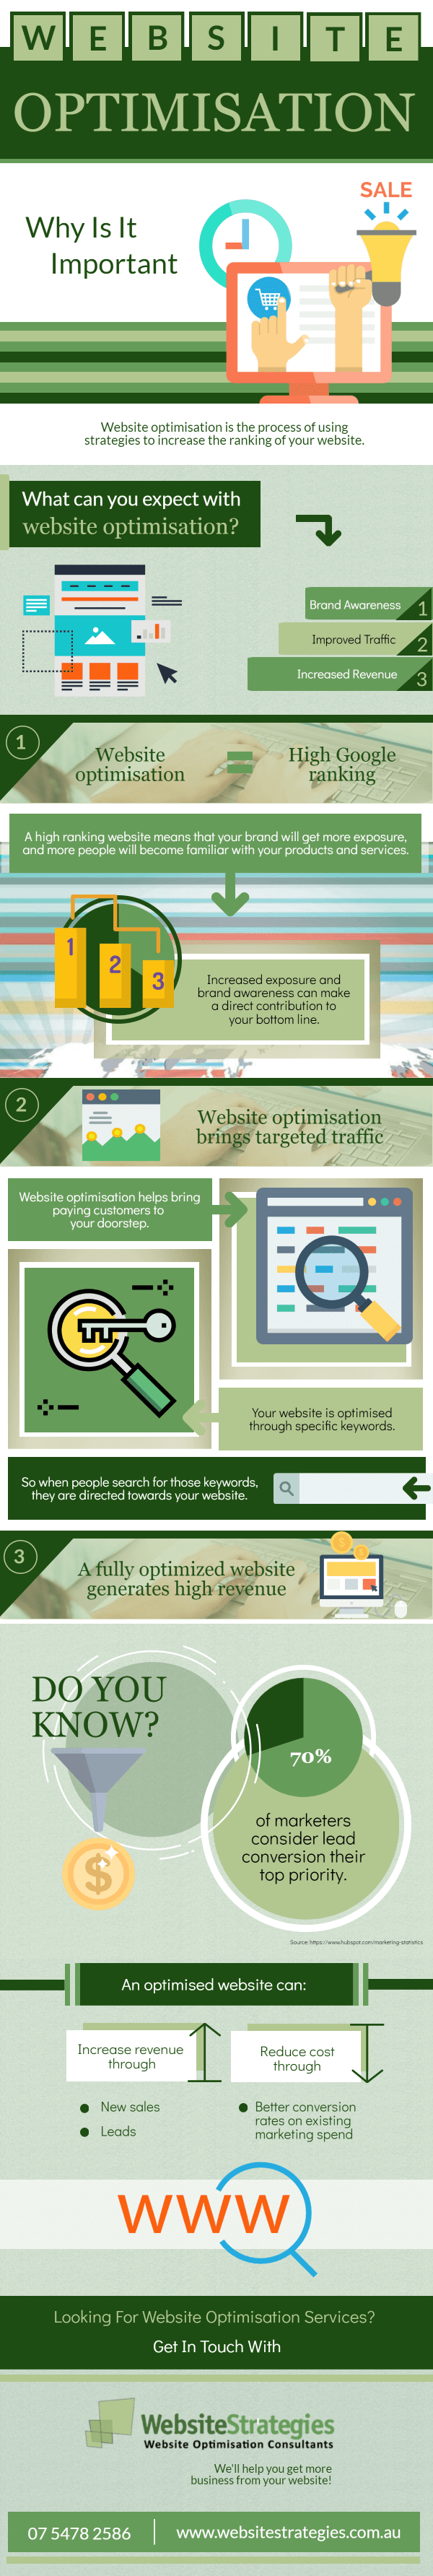 websitestrategies-general-infographic